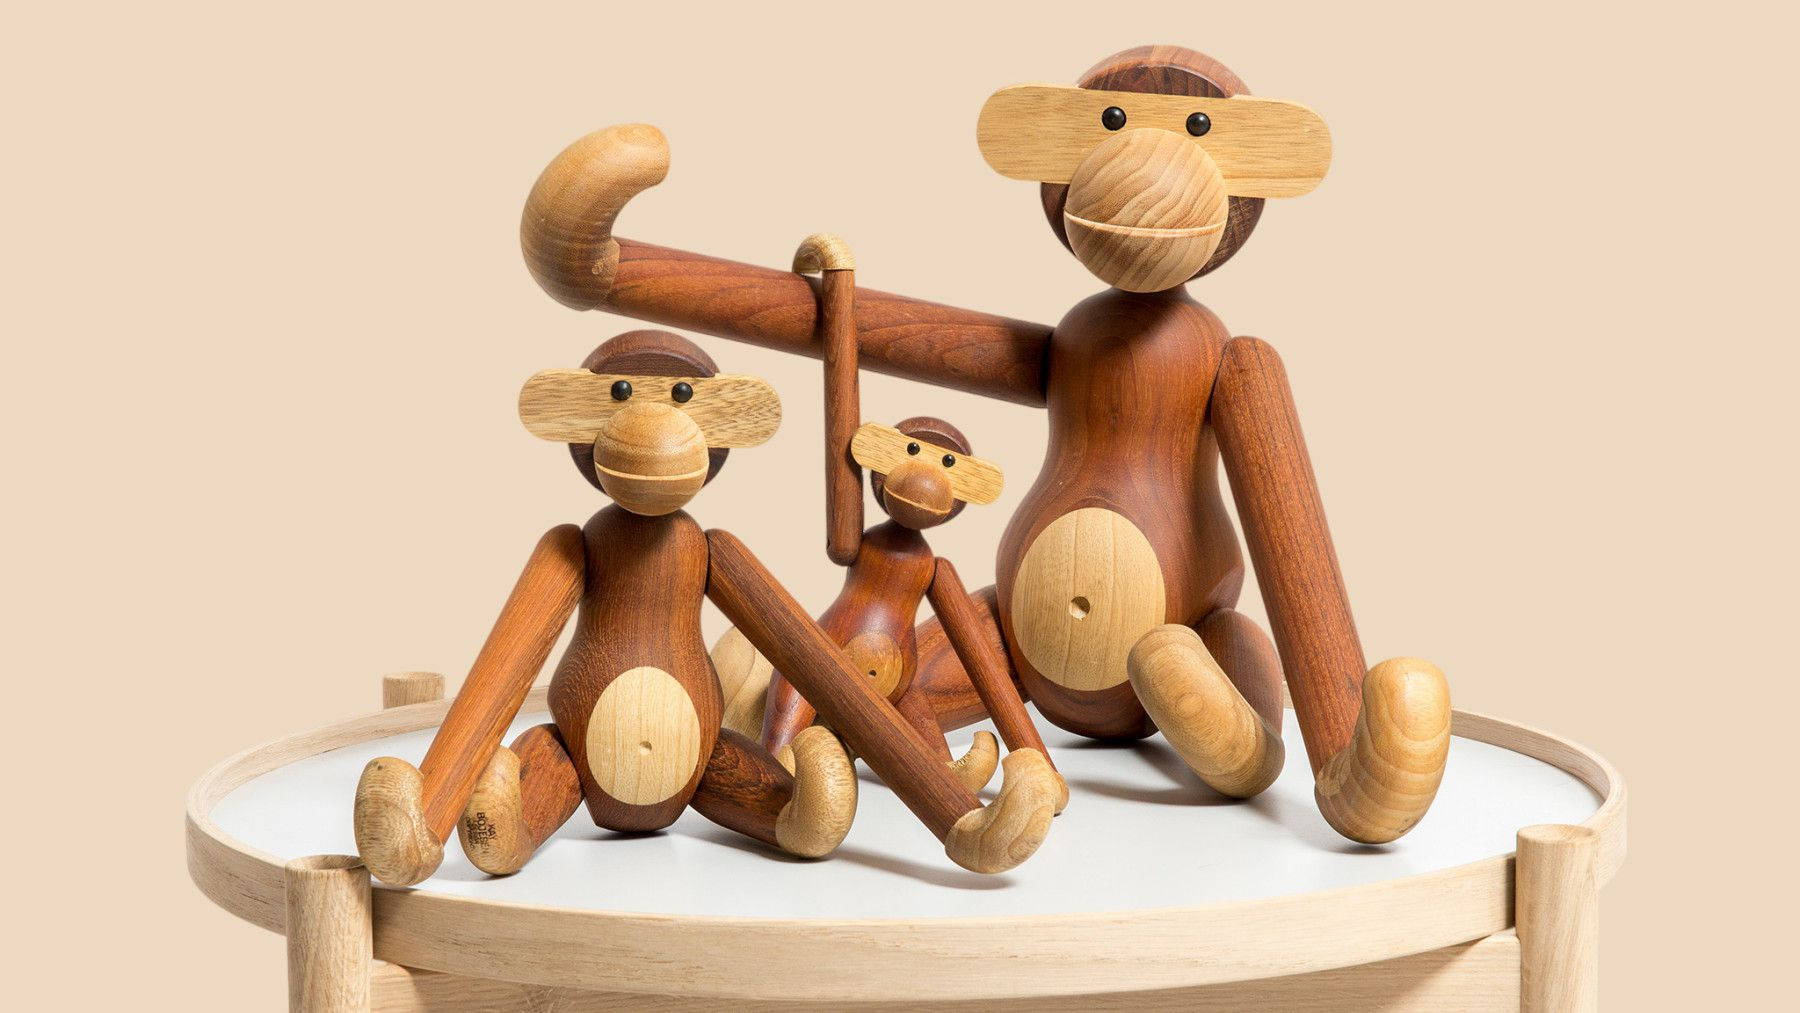 These wooden toys were designed by Kay Bojesen who was one of Denmark's most prolific artisans in the 20th century. ...